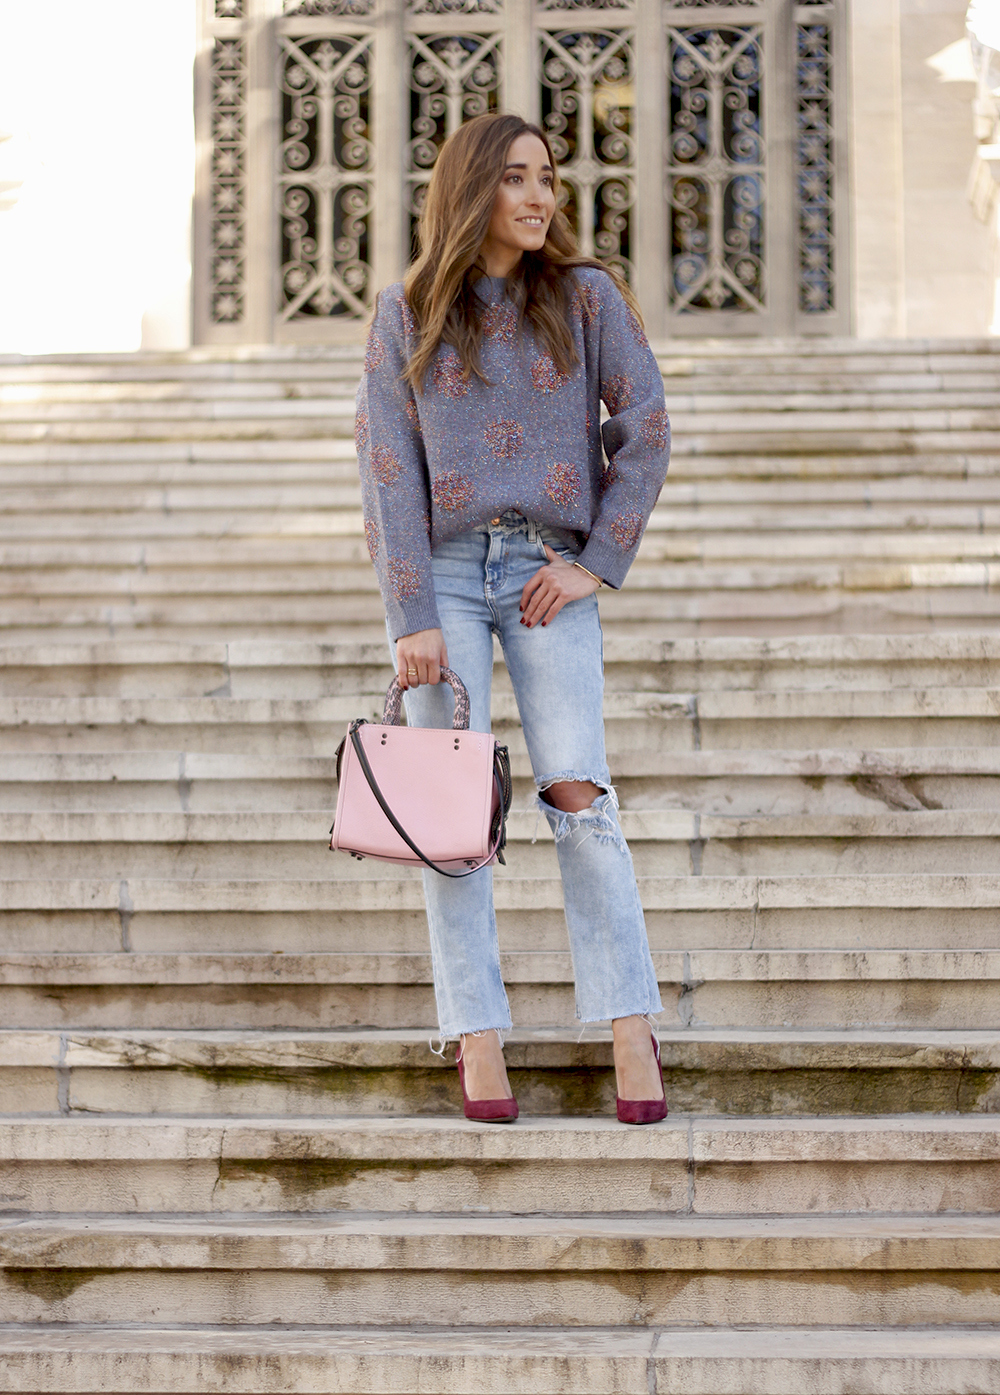 GRAY CHRISTMAS JERSEY ripped jeans pink coaach bag burgundy heels street style fall outfit 20186827